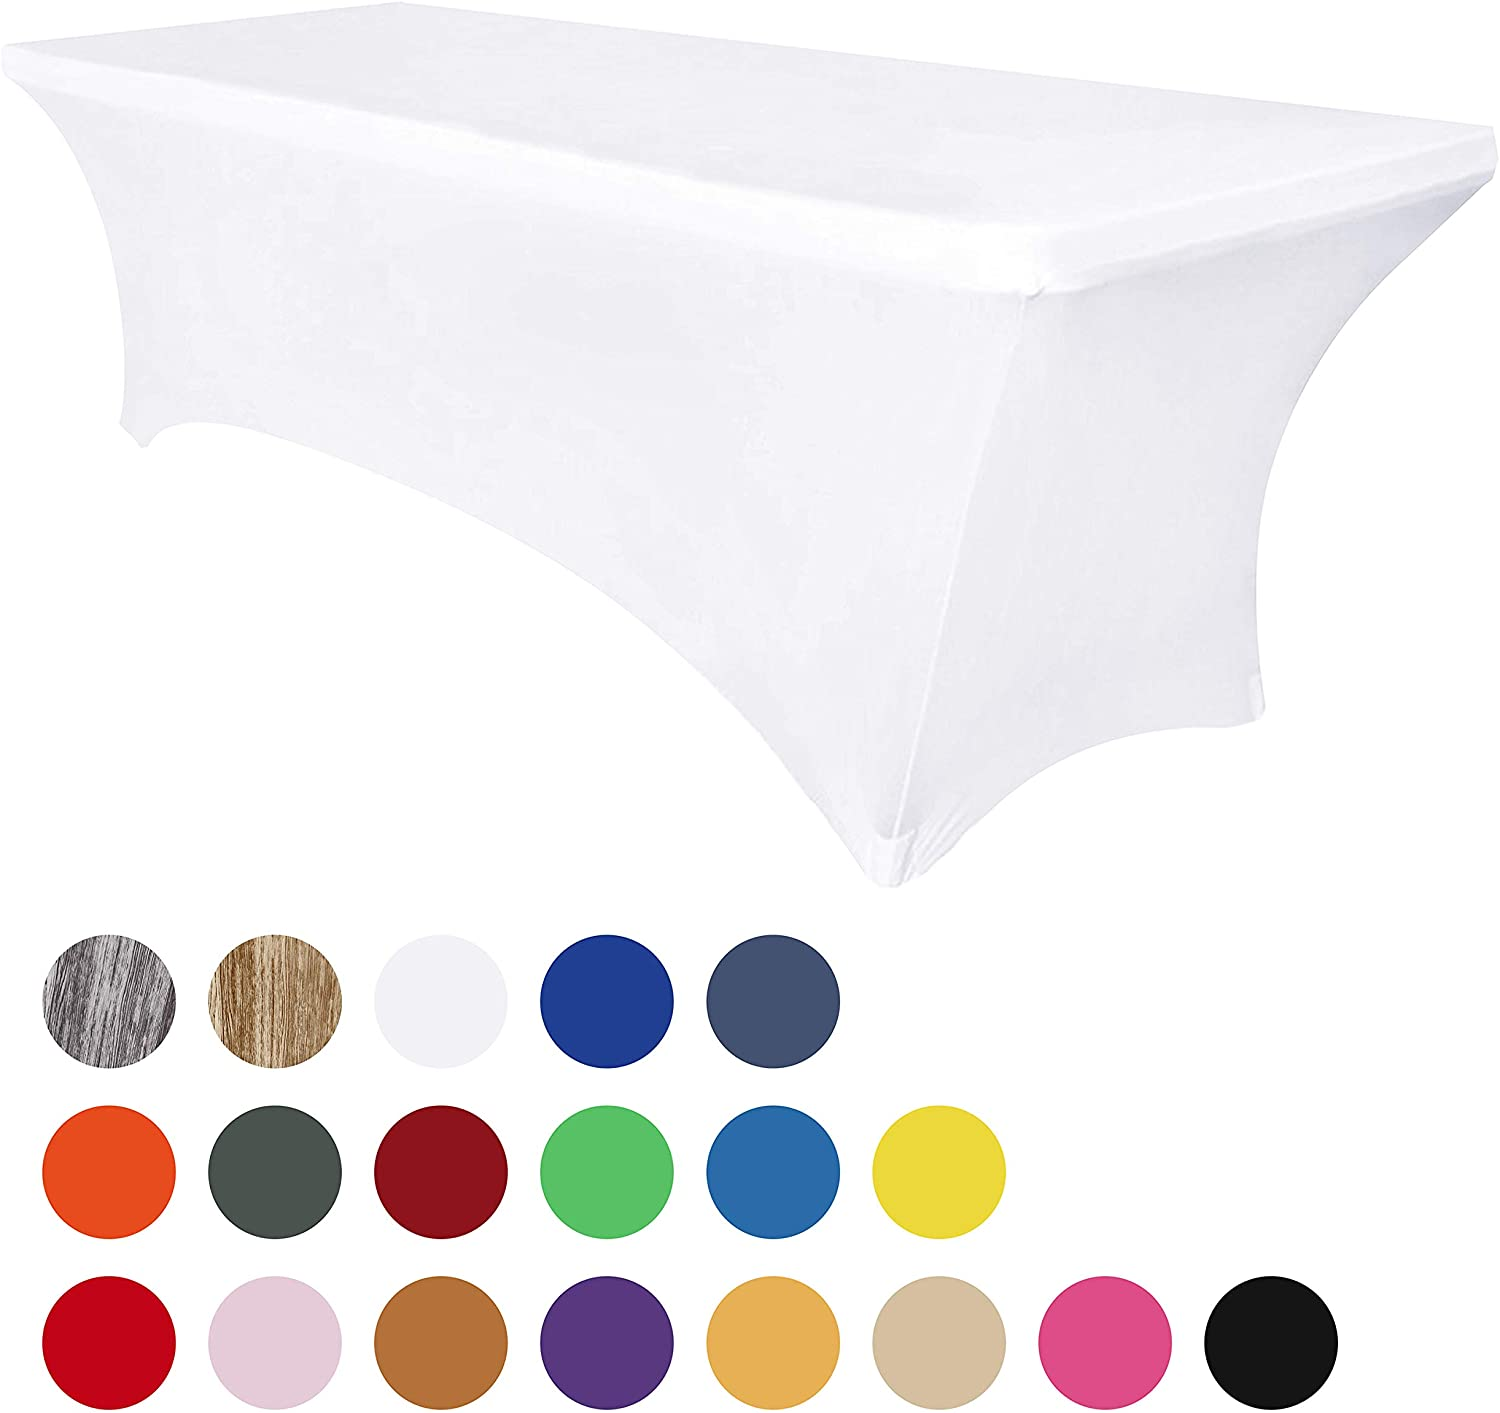 Obstal 8ft Stretch Spandex Table Cover for Standard Folding Tables - Universal Rectangular Fitted Tablecloth Protector for Wedding, Banquet and Party (White, 96 Length x 30 Width x 30 Height Inches)